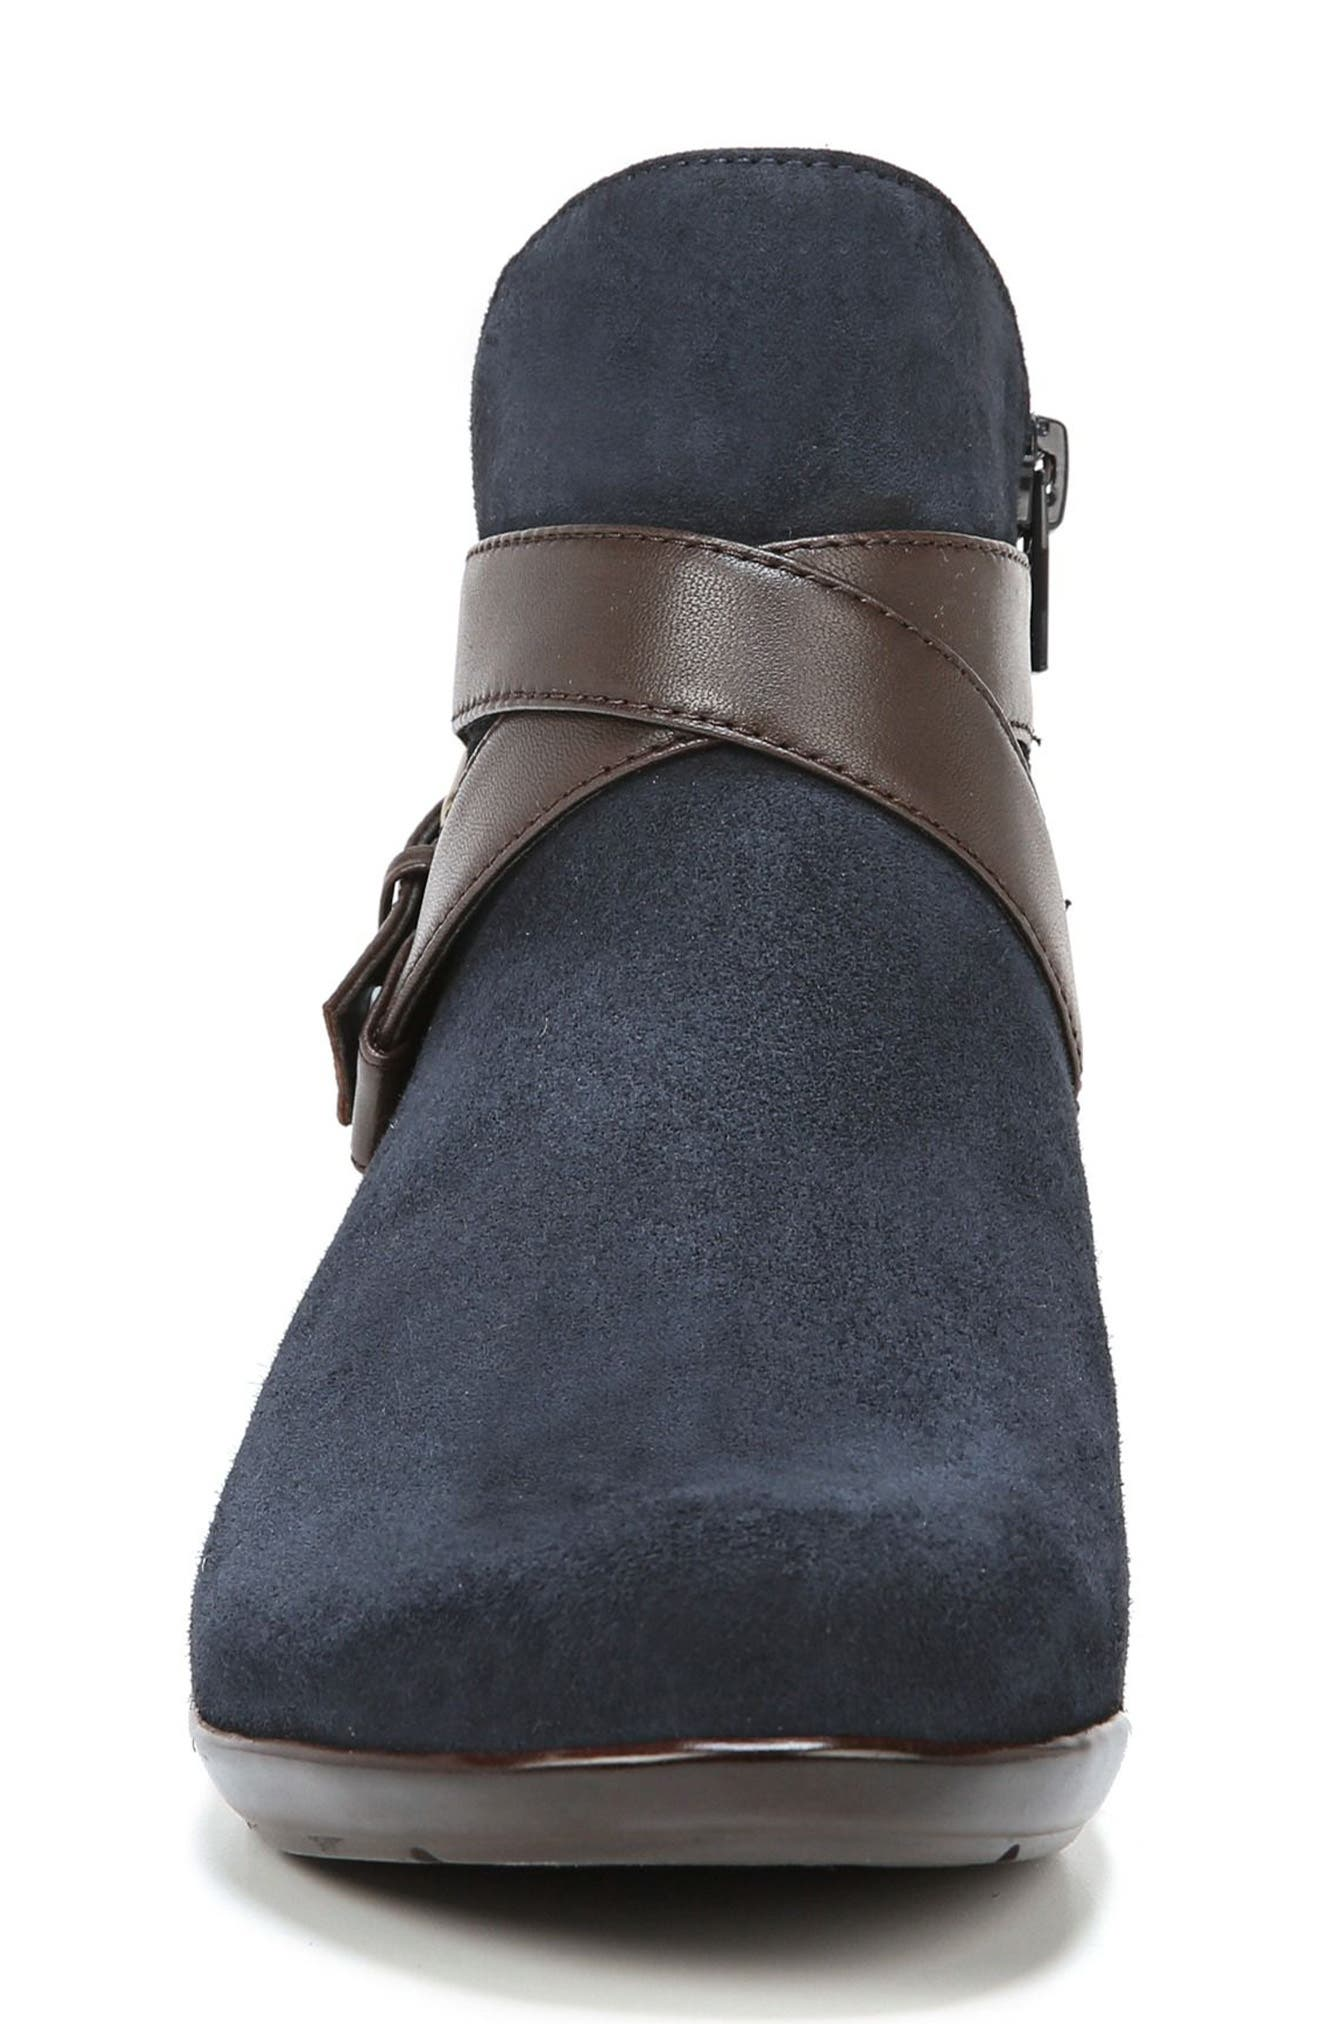 Cassandra Buckle Strap Bootie,                             Alternate thumbnail 4, color,                             NAVY/ BROWN SUEDE